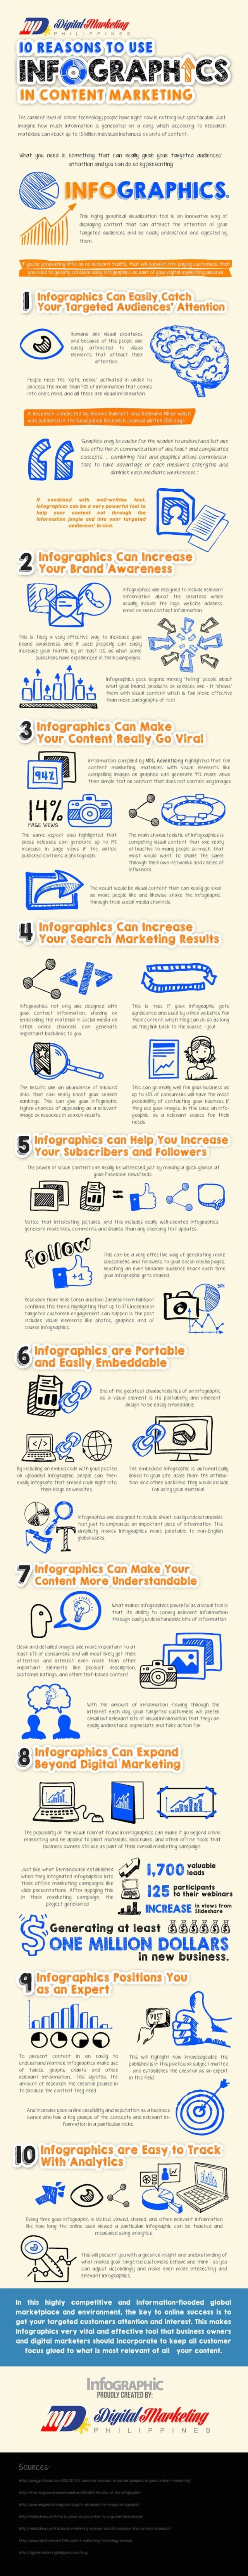 Reasons to Use Infographics